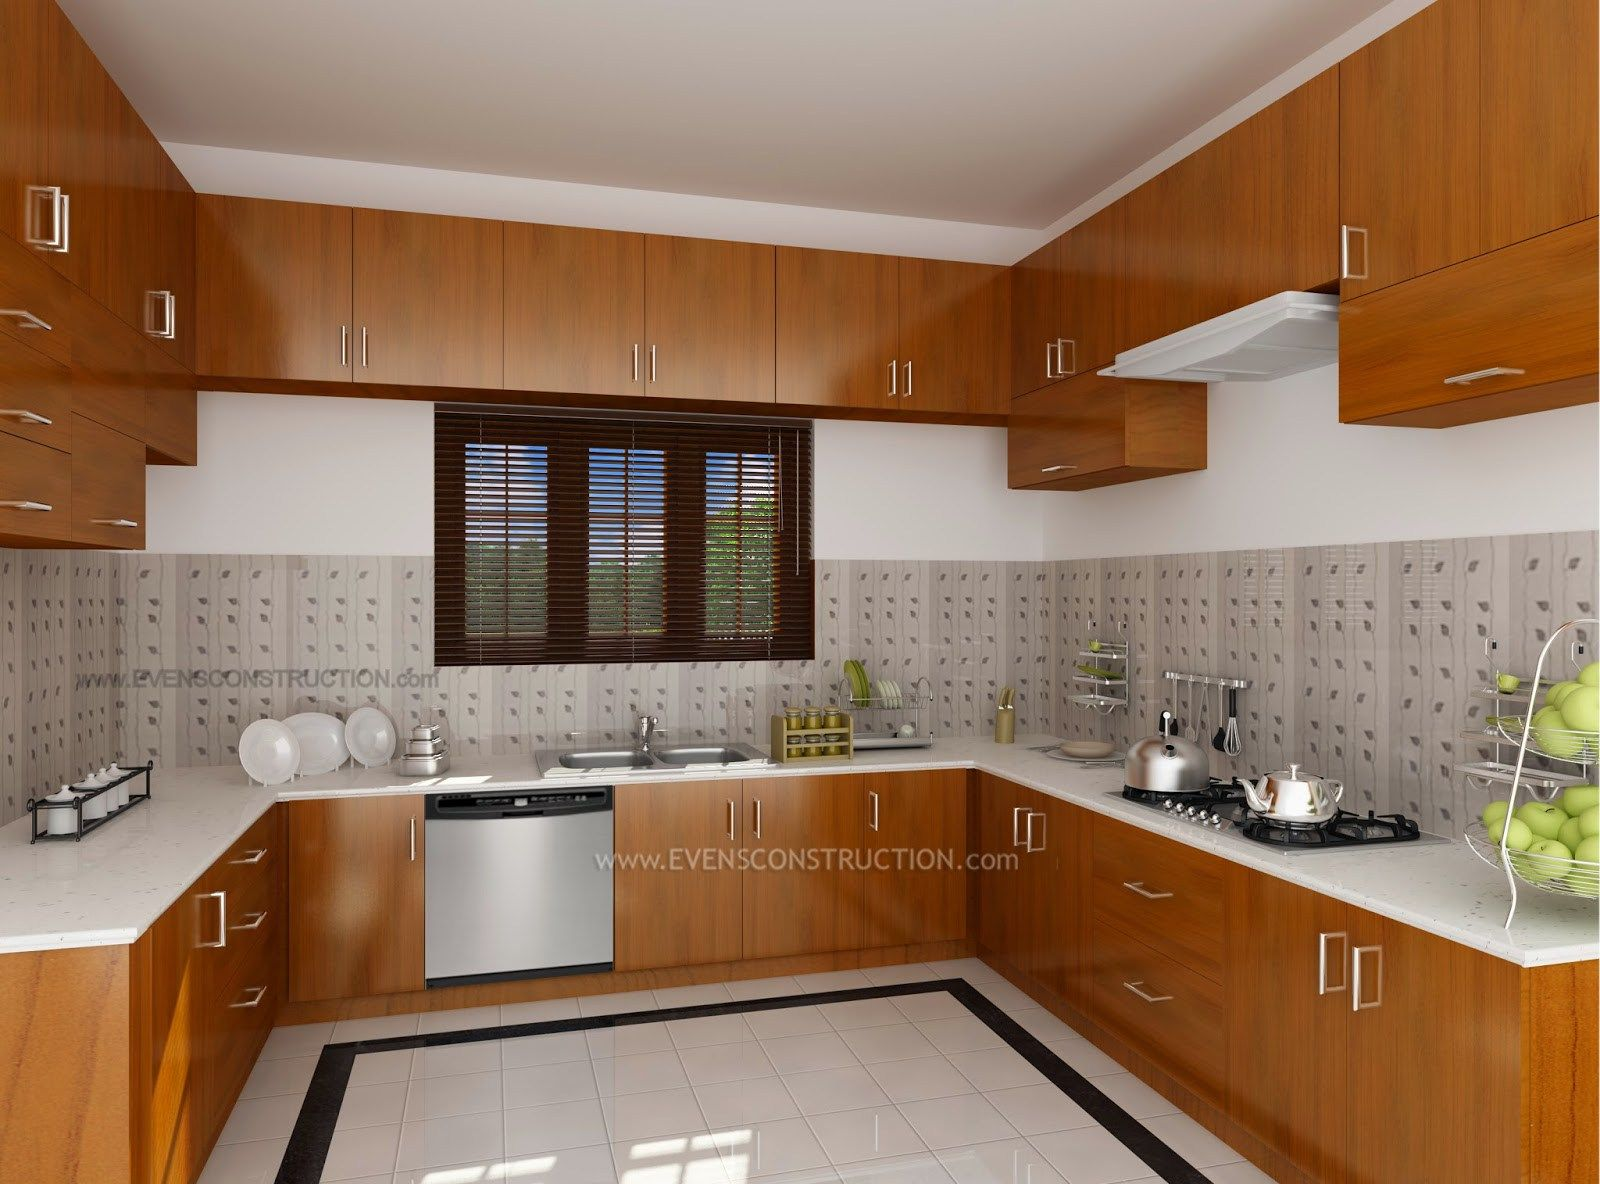 Design Interior Kitchen Home Kerala Modern House Kitchen Kitchen Dining  Kitchen Interior Designs Subin Surendran Architects